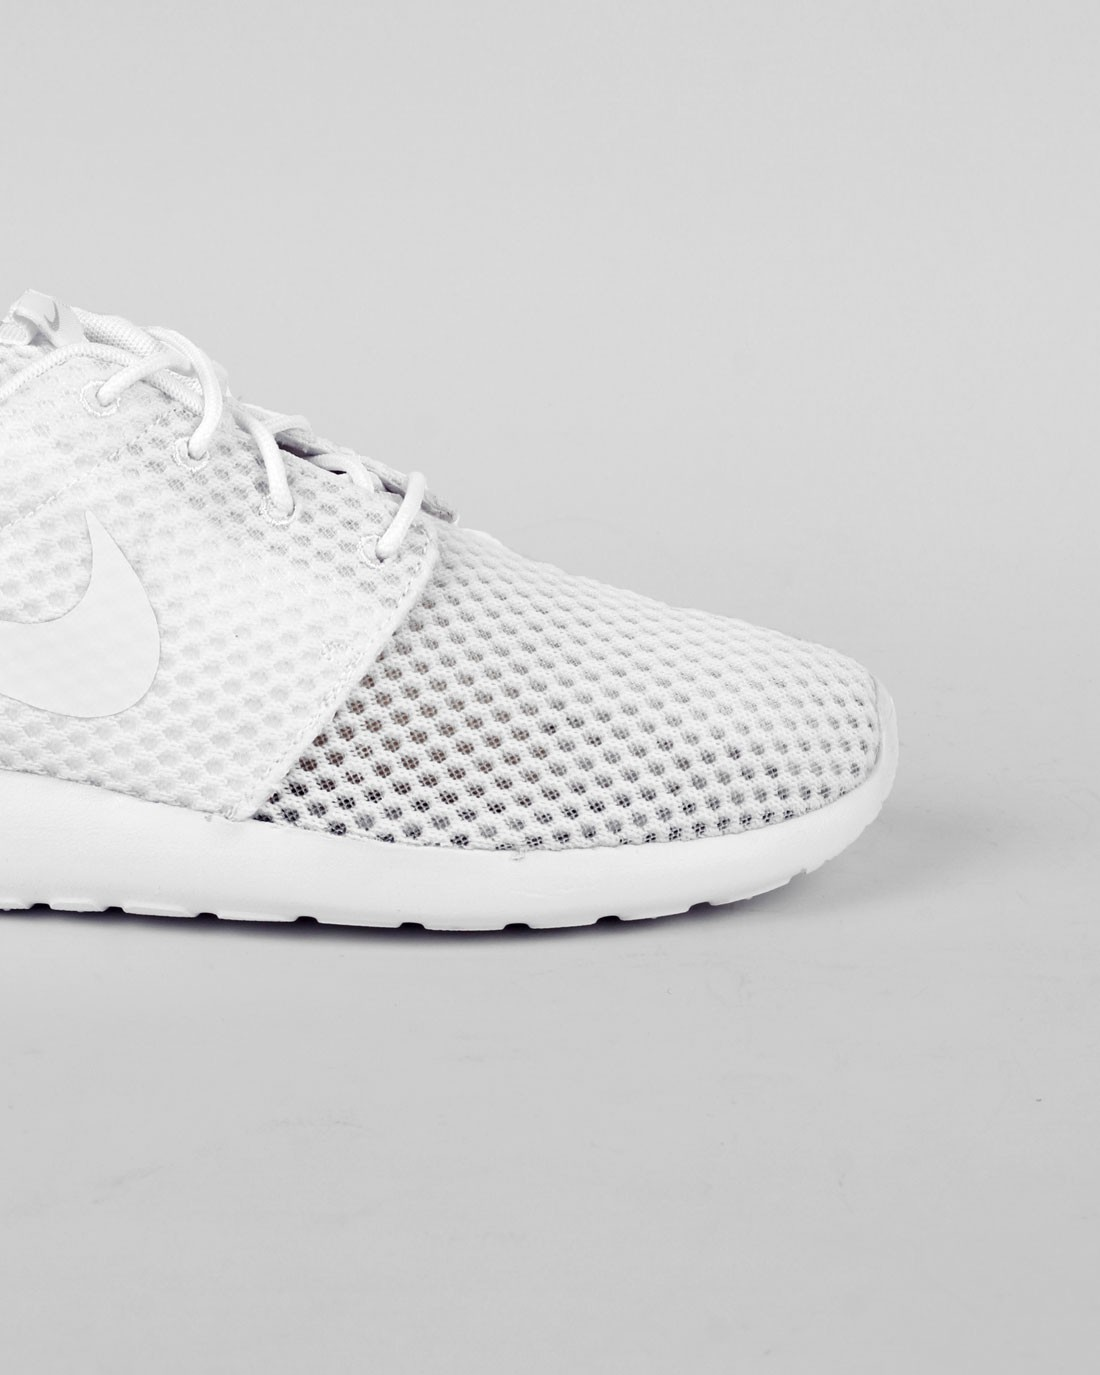 Nike Roshe One BR (Breeze) Monochrome Pack Homme Chaussures De Ville Maille Blanche/Tout Blanche/Voile Blanche/Loup Gris 718552-110